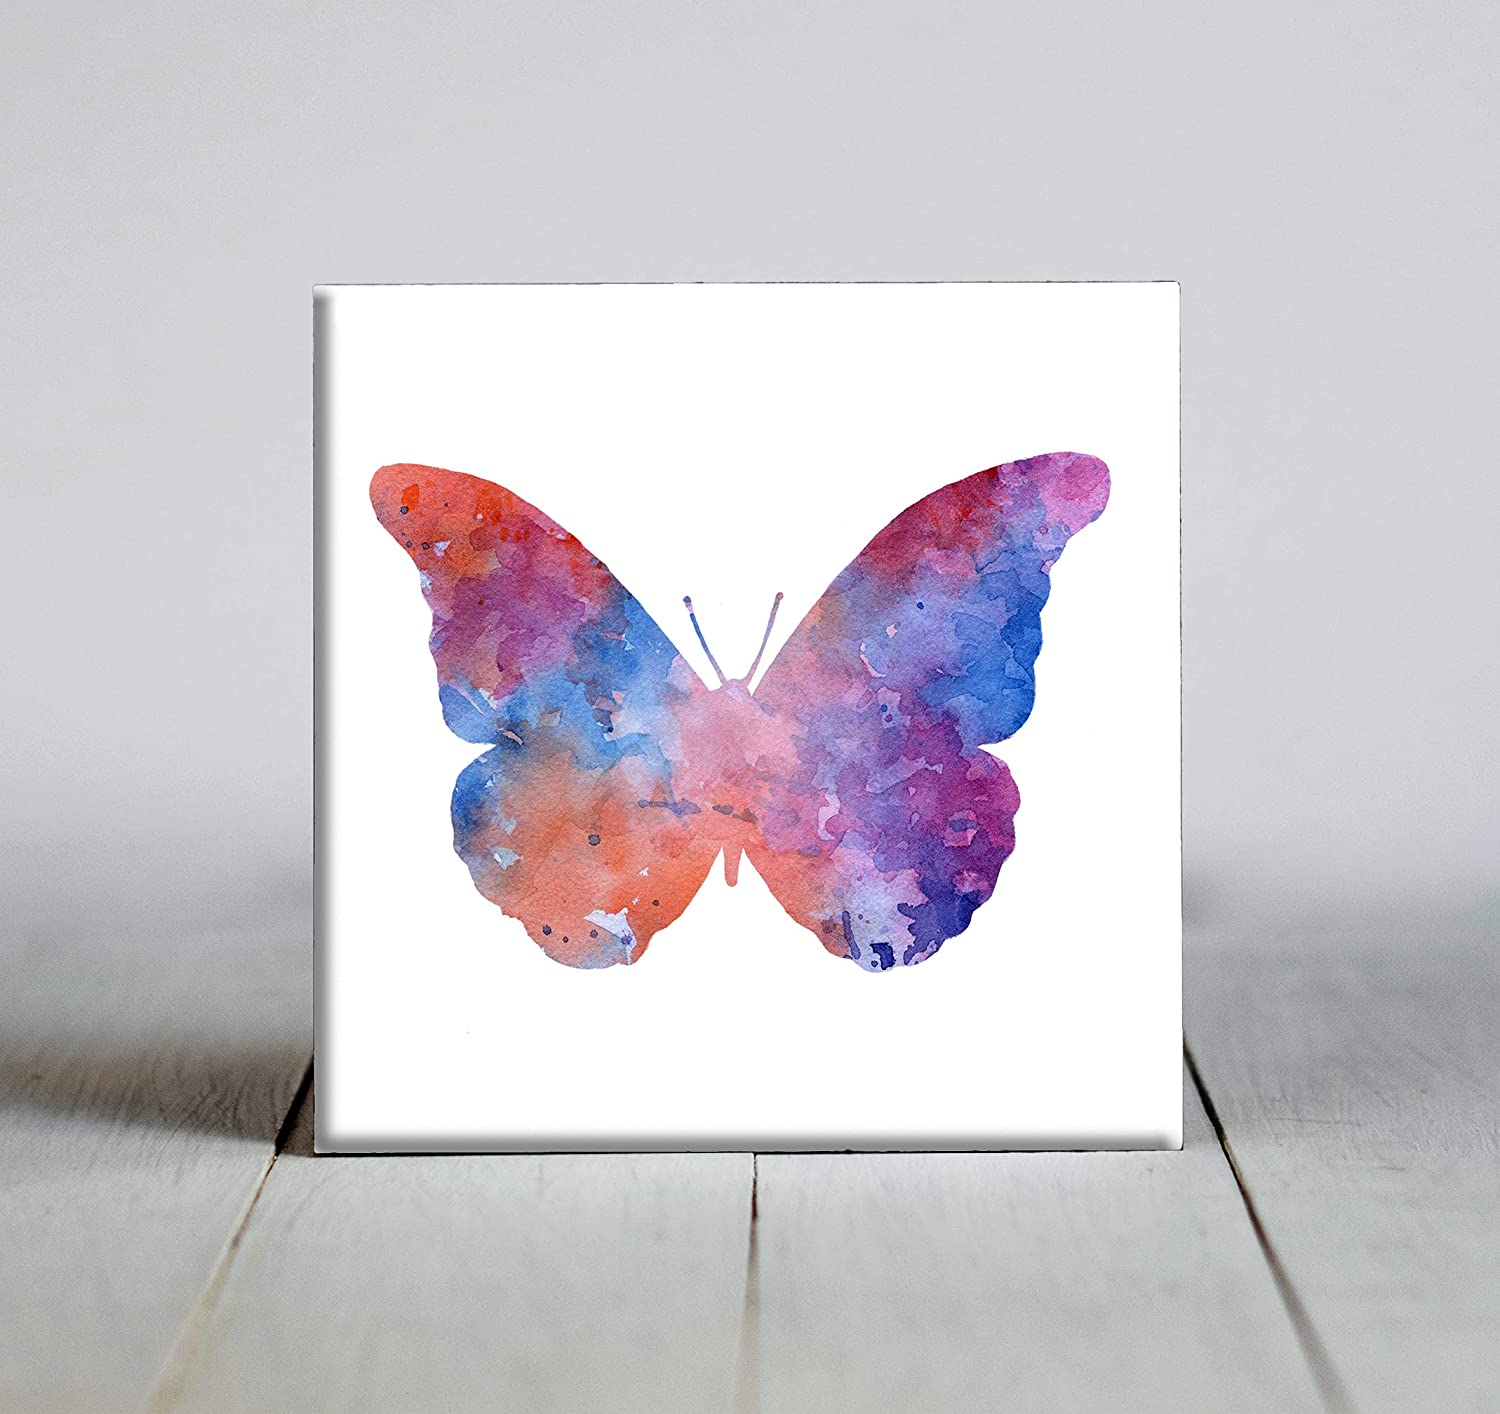 Blue Abstract Butterfly Watercolor Art 5 popular Max 84% OFF 4 Decorative Tile X 4.25